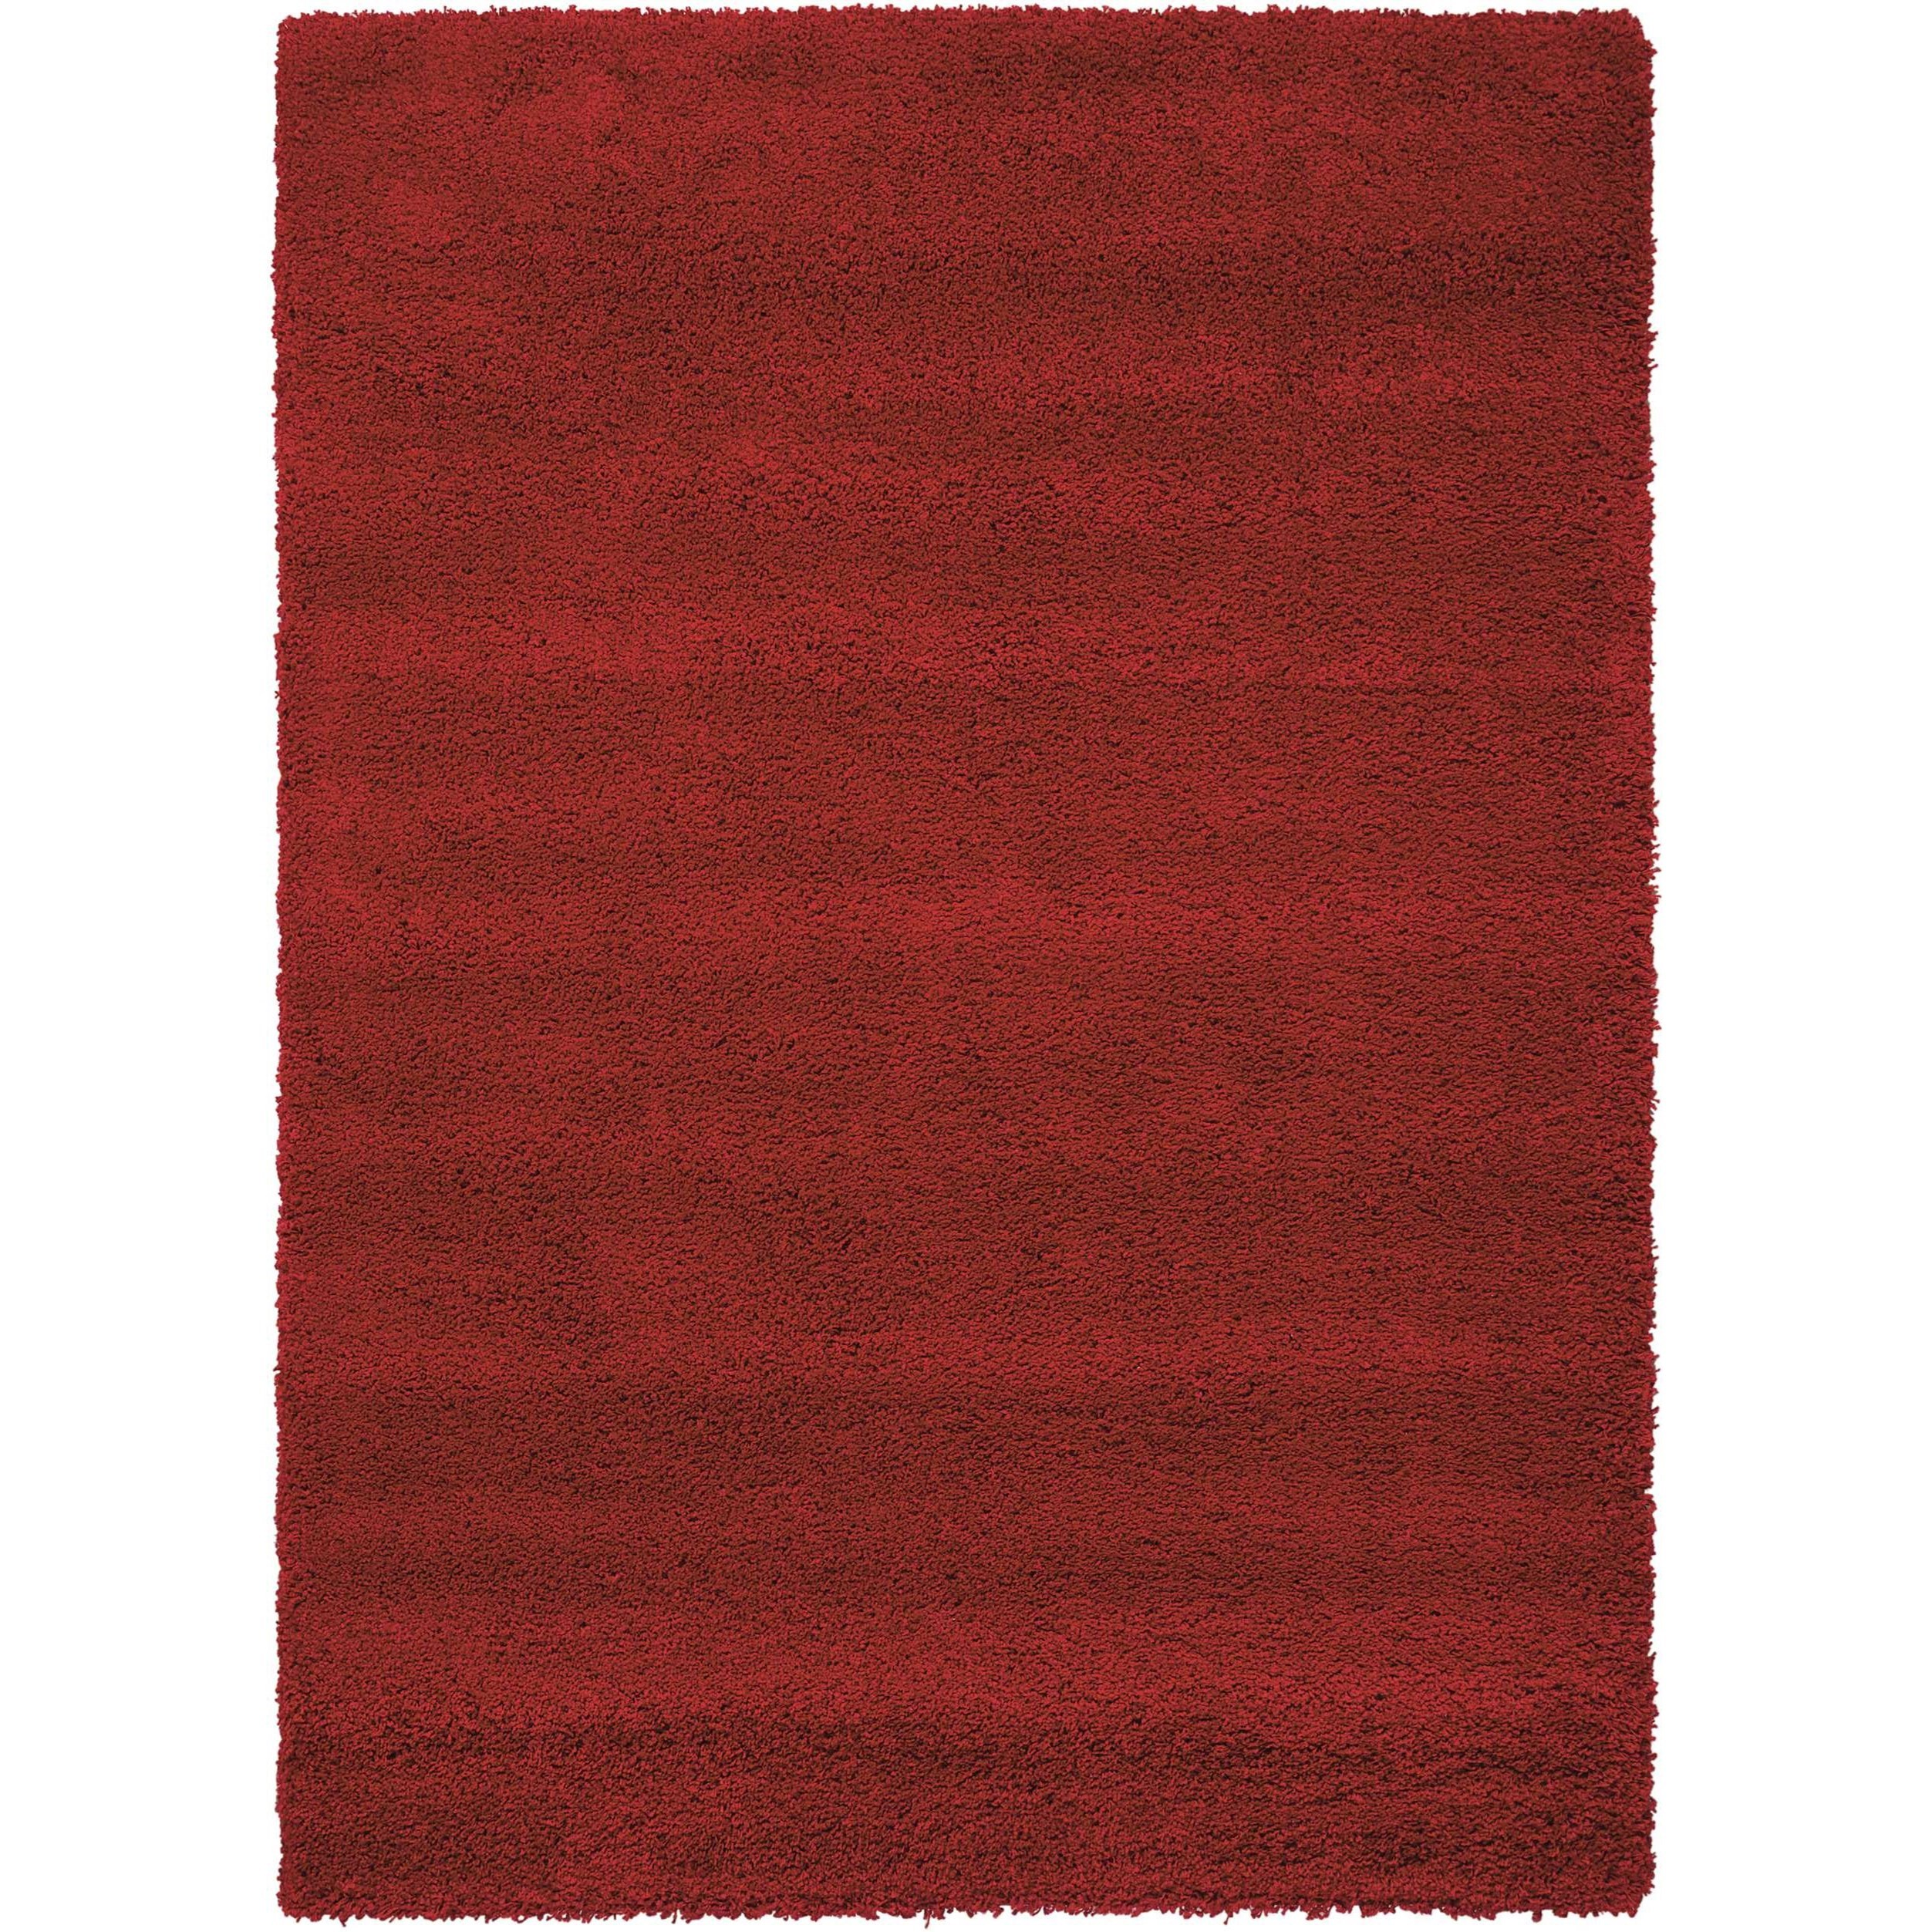 Amore Amore AMOR1 Red 5'x8' Area Rug by Nourison at Home Collections Furniture